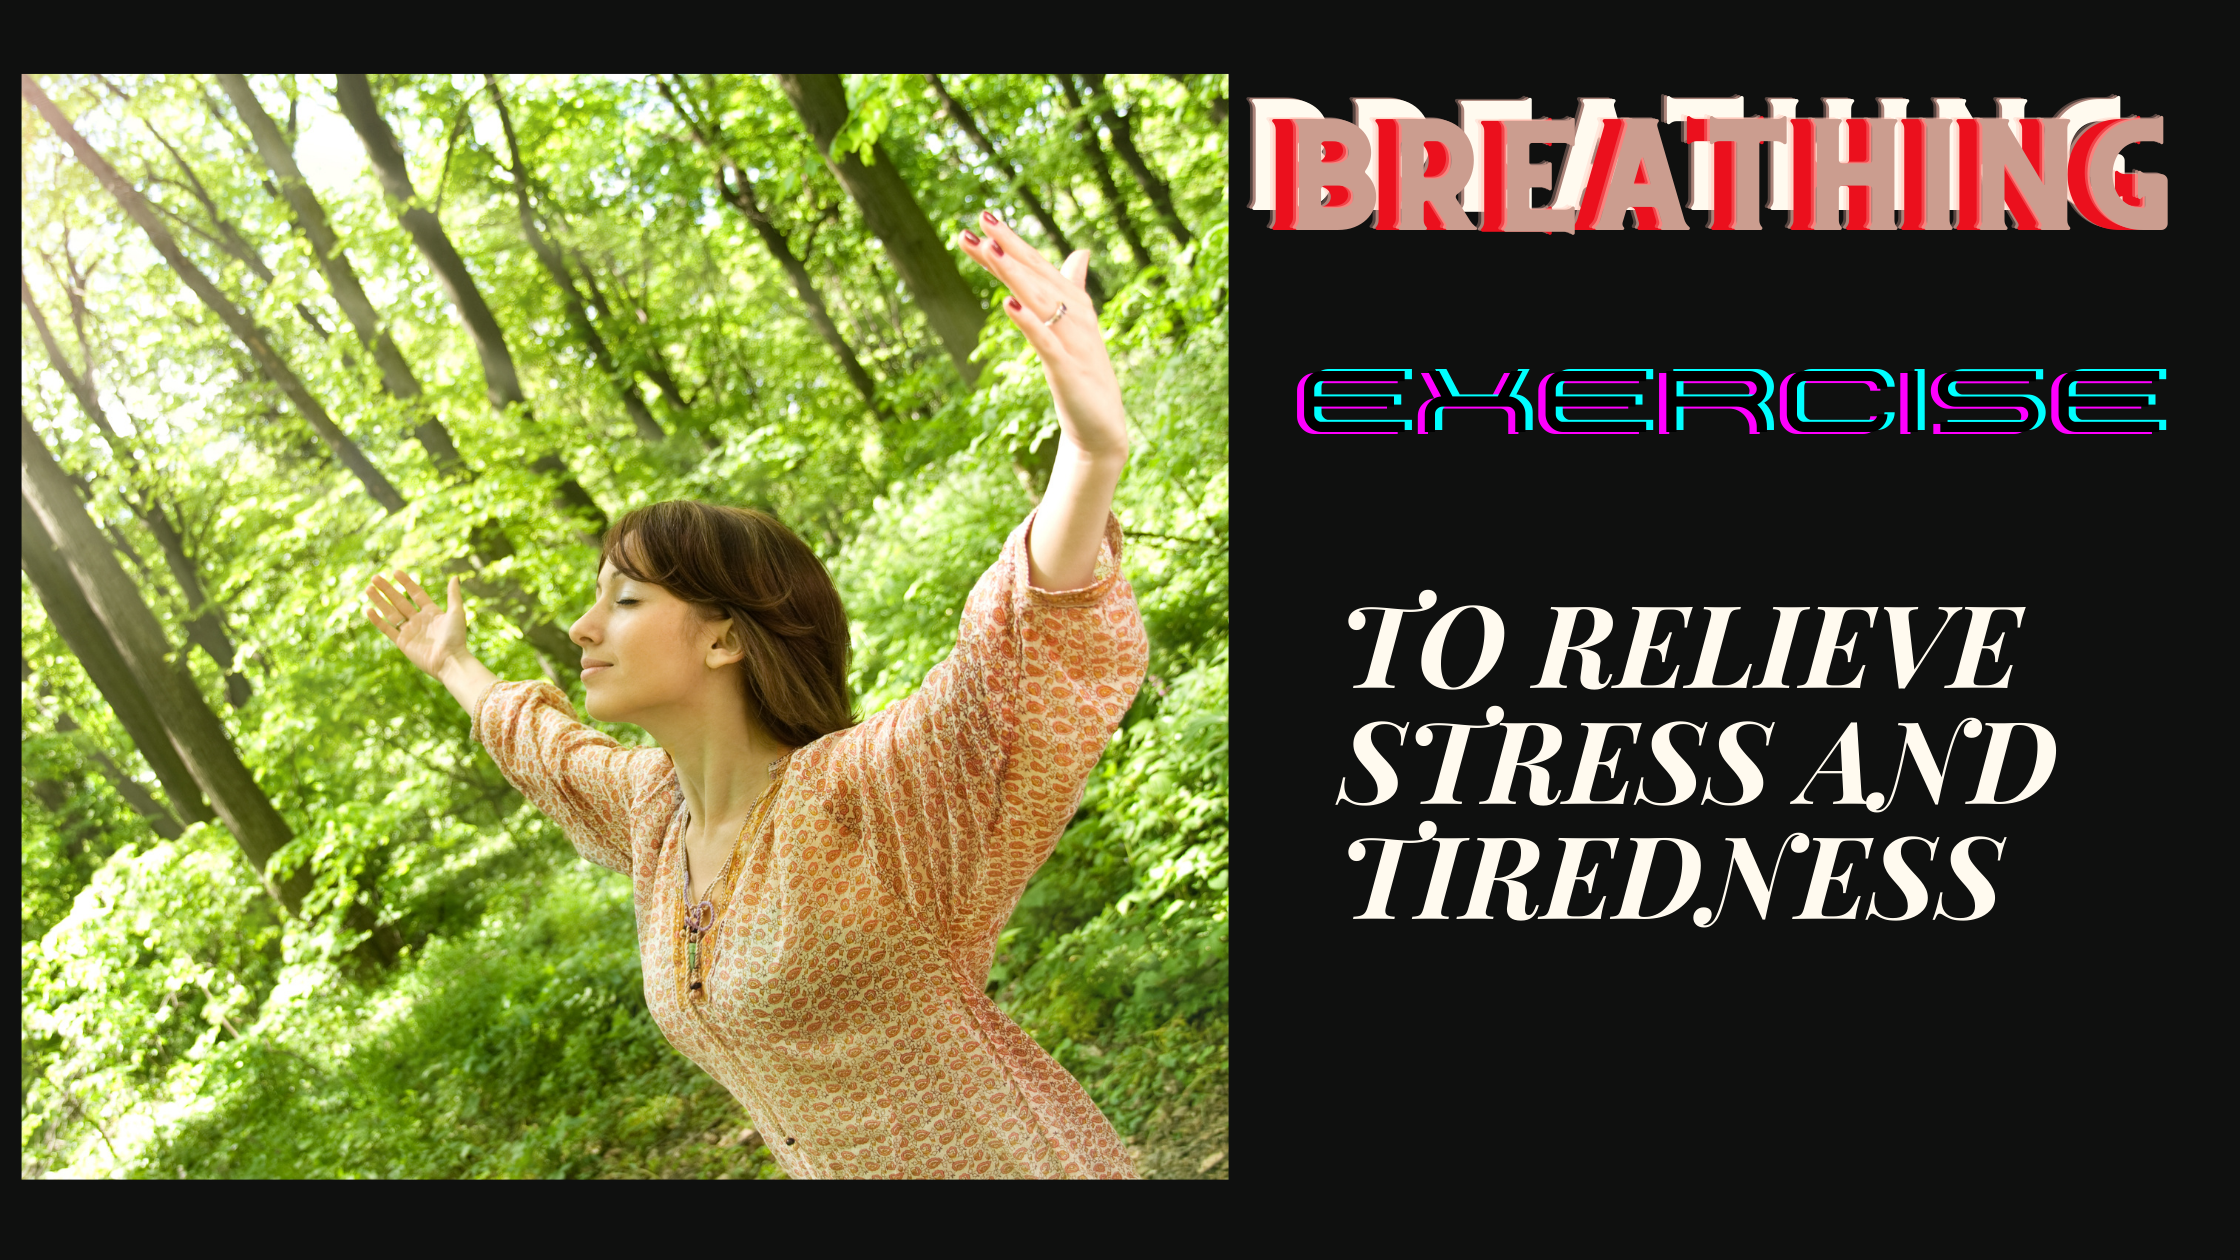 BREATHING EXERCISES THAT RELIEVE STRESS AND TIREDNESS